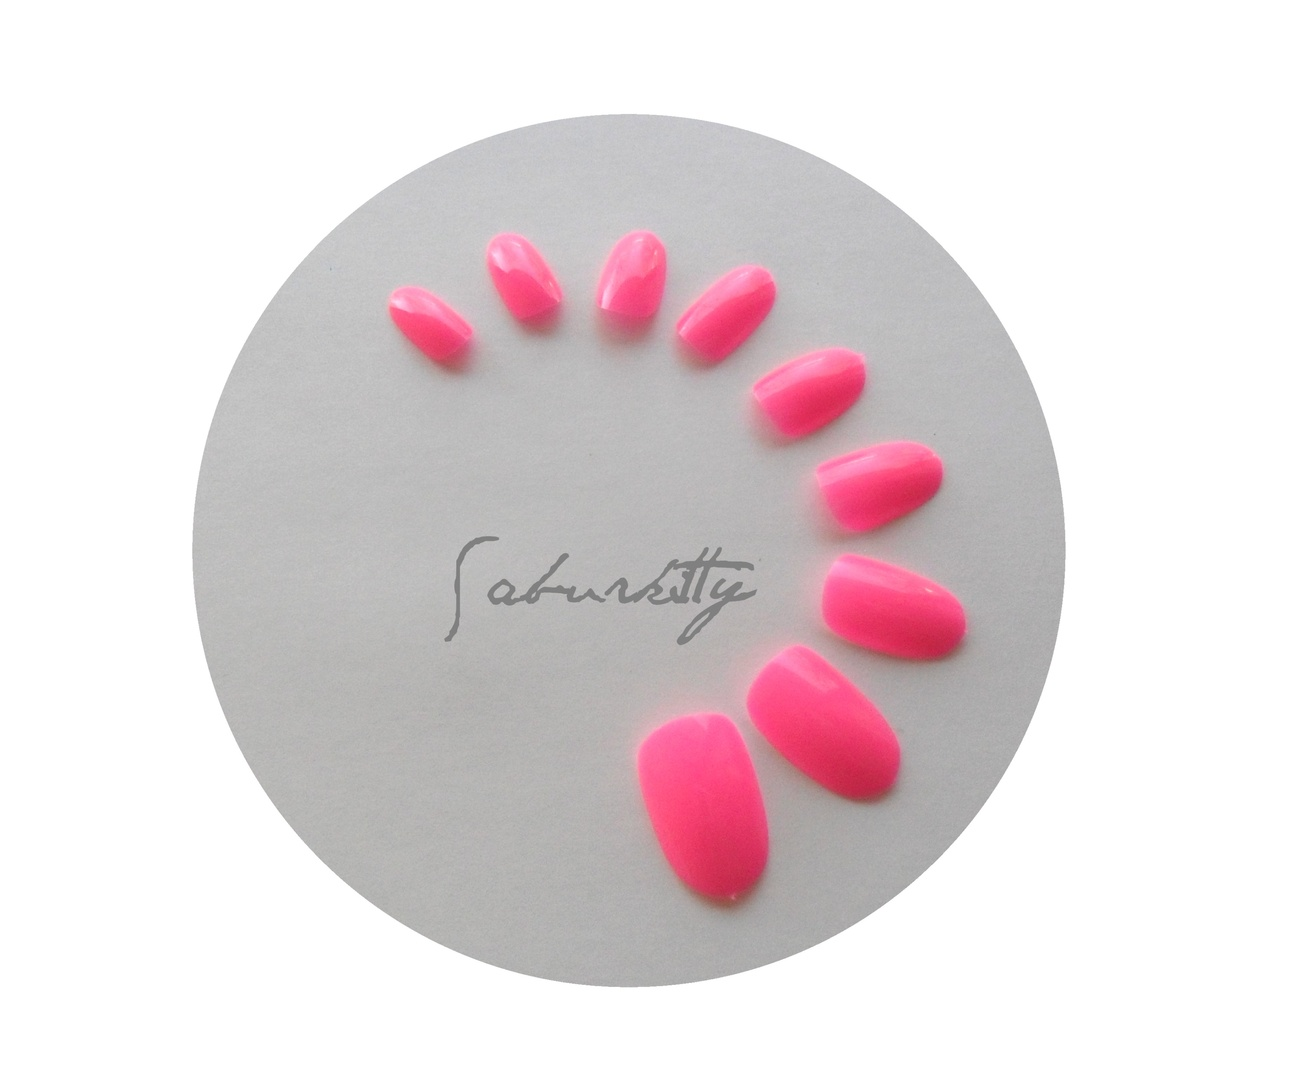 Neon Pink Nail Art Blanks 40 Count Short manicure artificial fake tips case